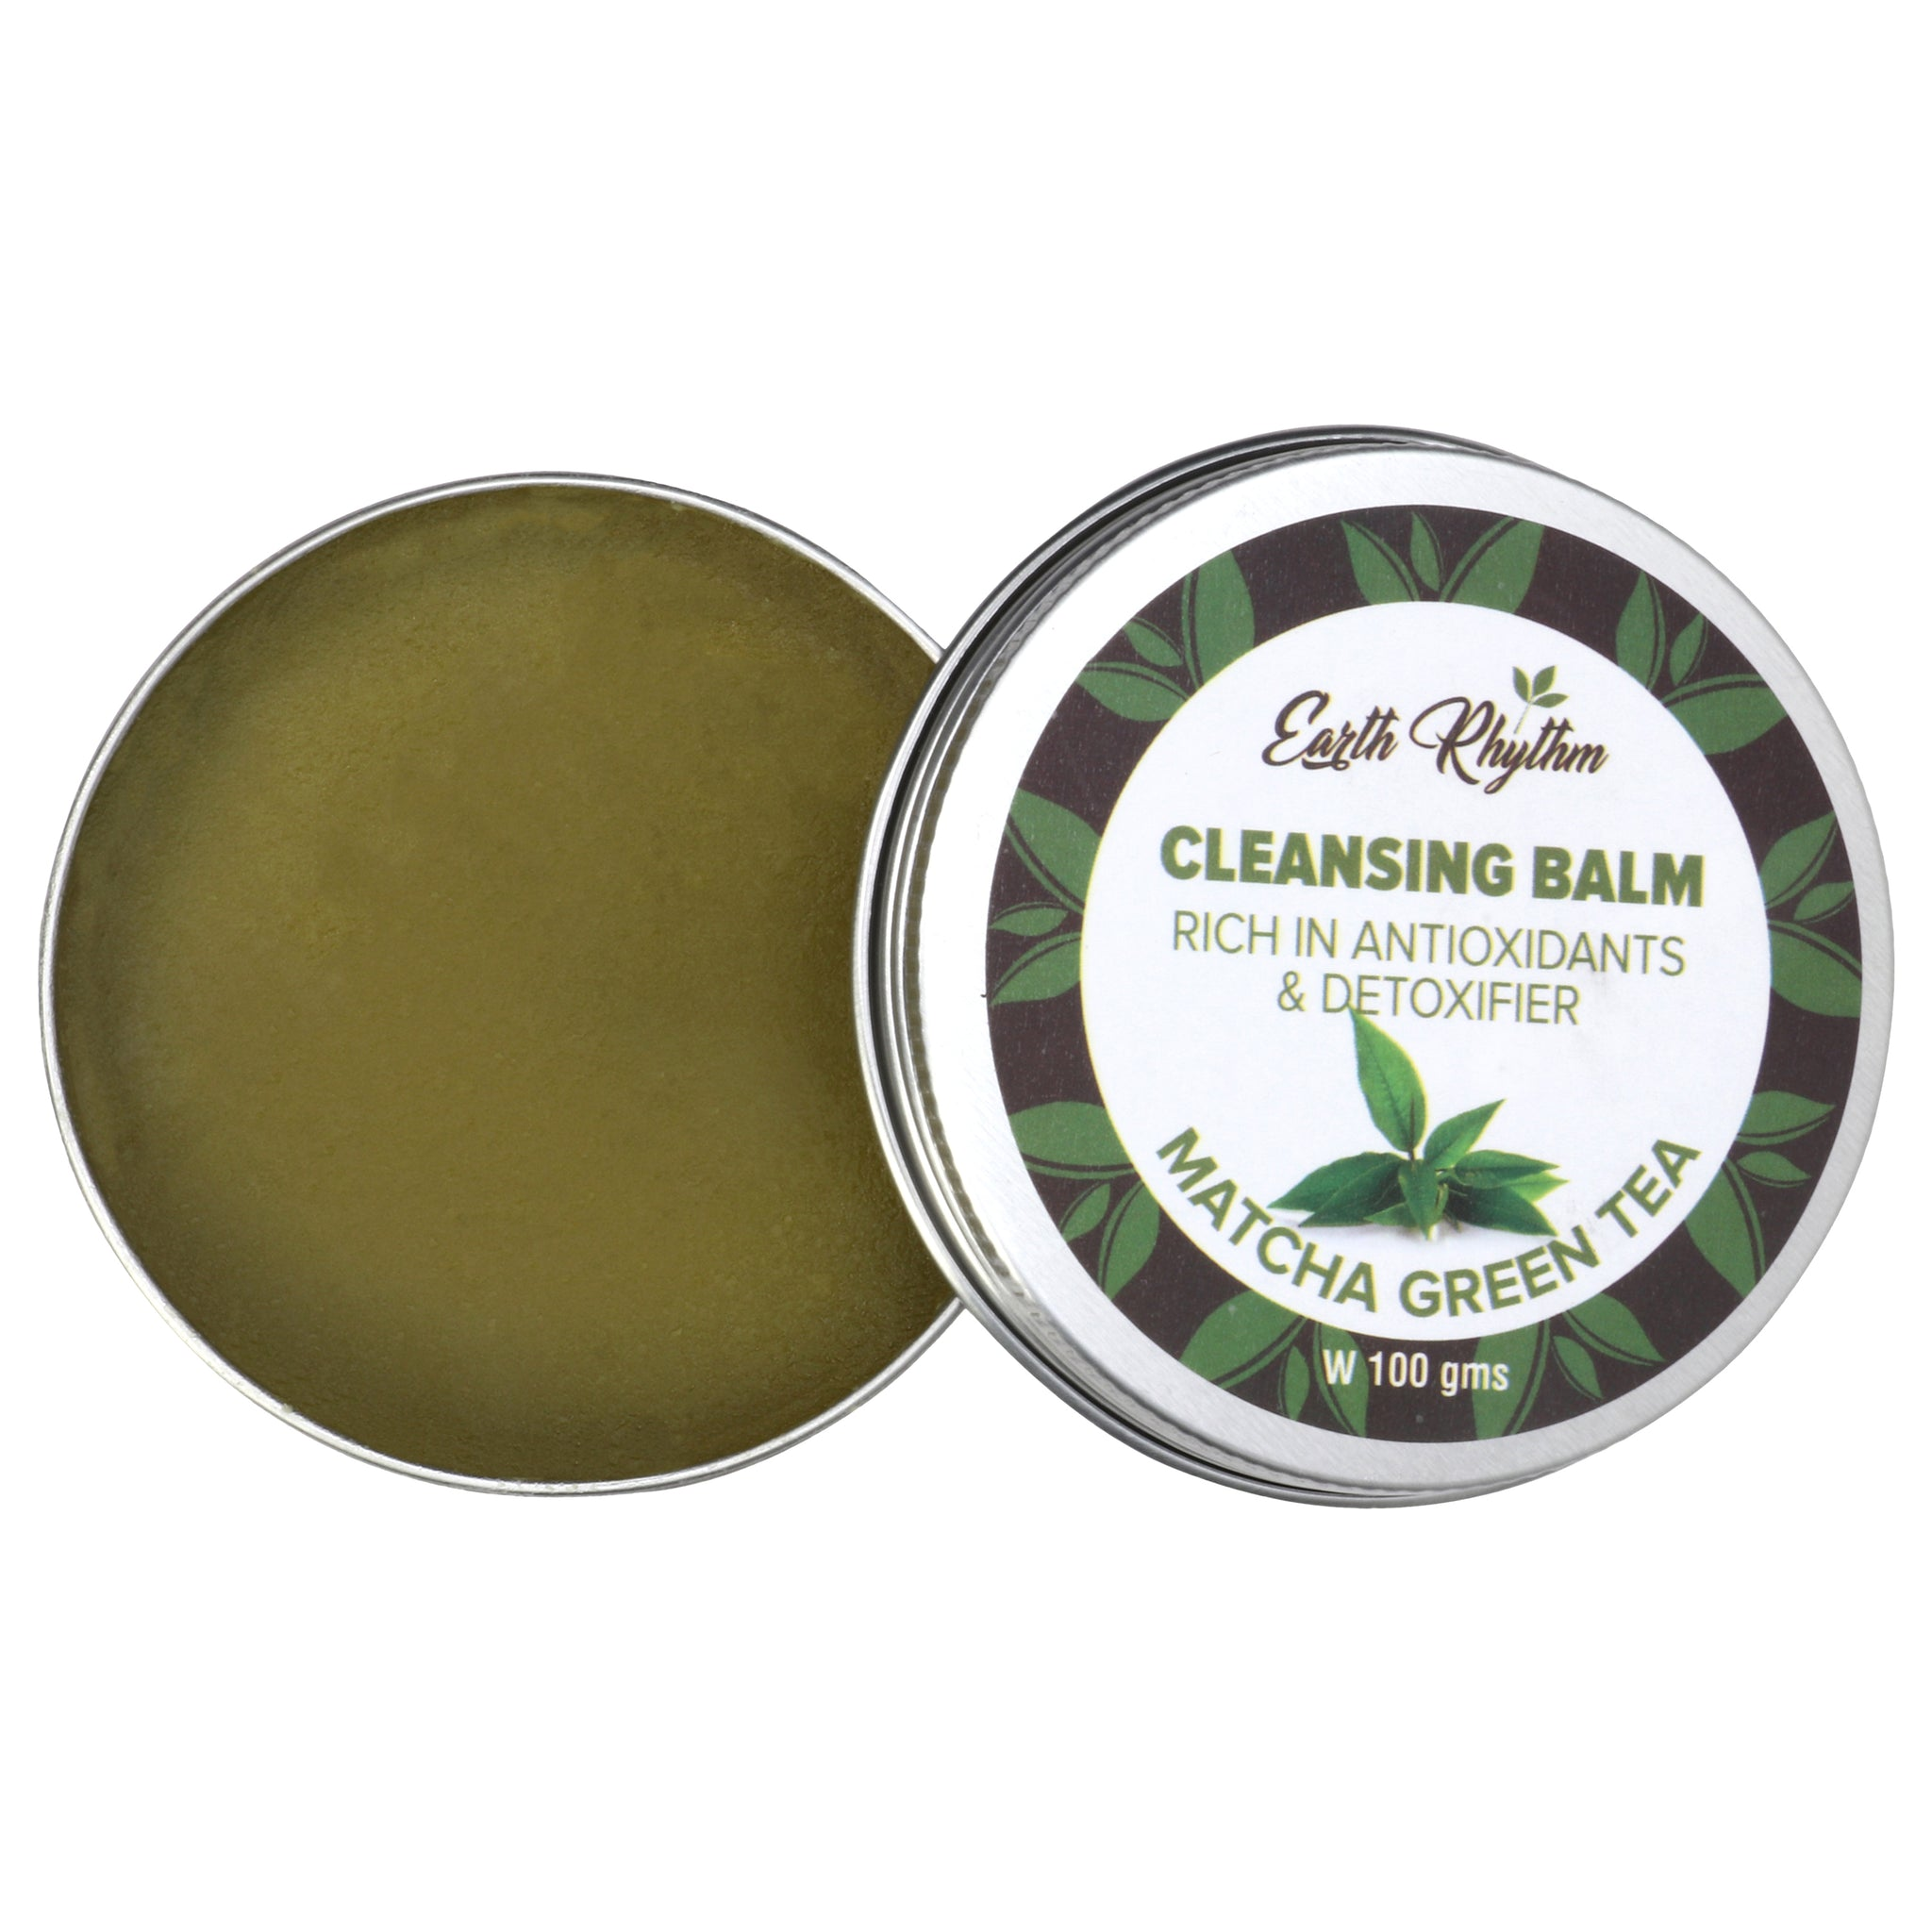 NOURISHING CLEANSING BALM WITH MATCHA GREEN TEA